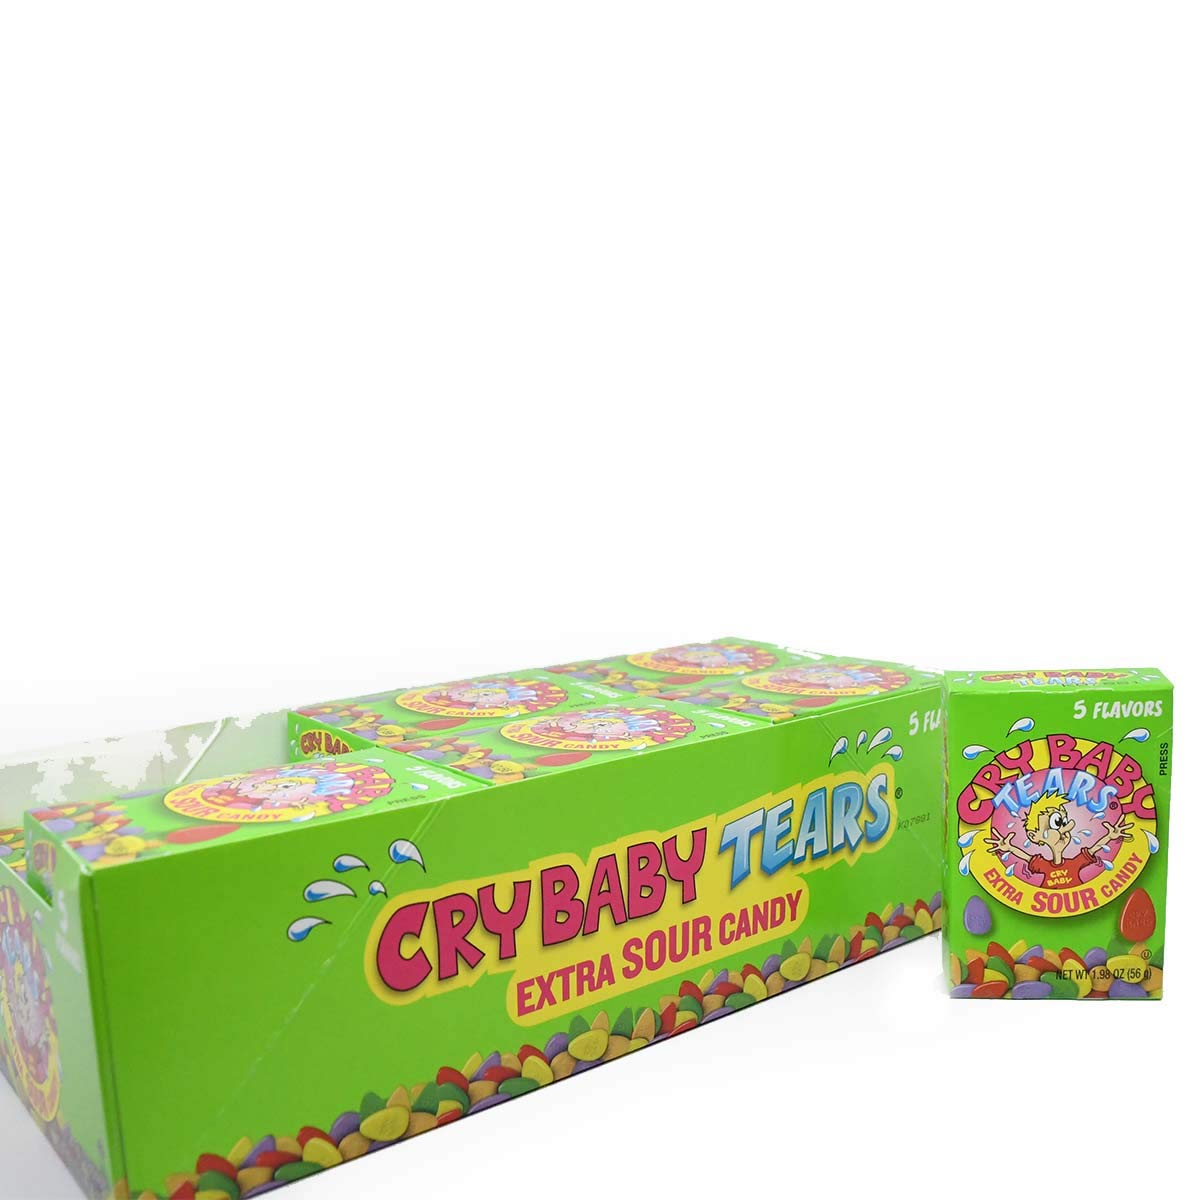 Cry Soldering Baby Tears Extra Many popular brands Sour 1.98-Ounce Candy Boxes Five Flavors